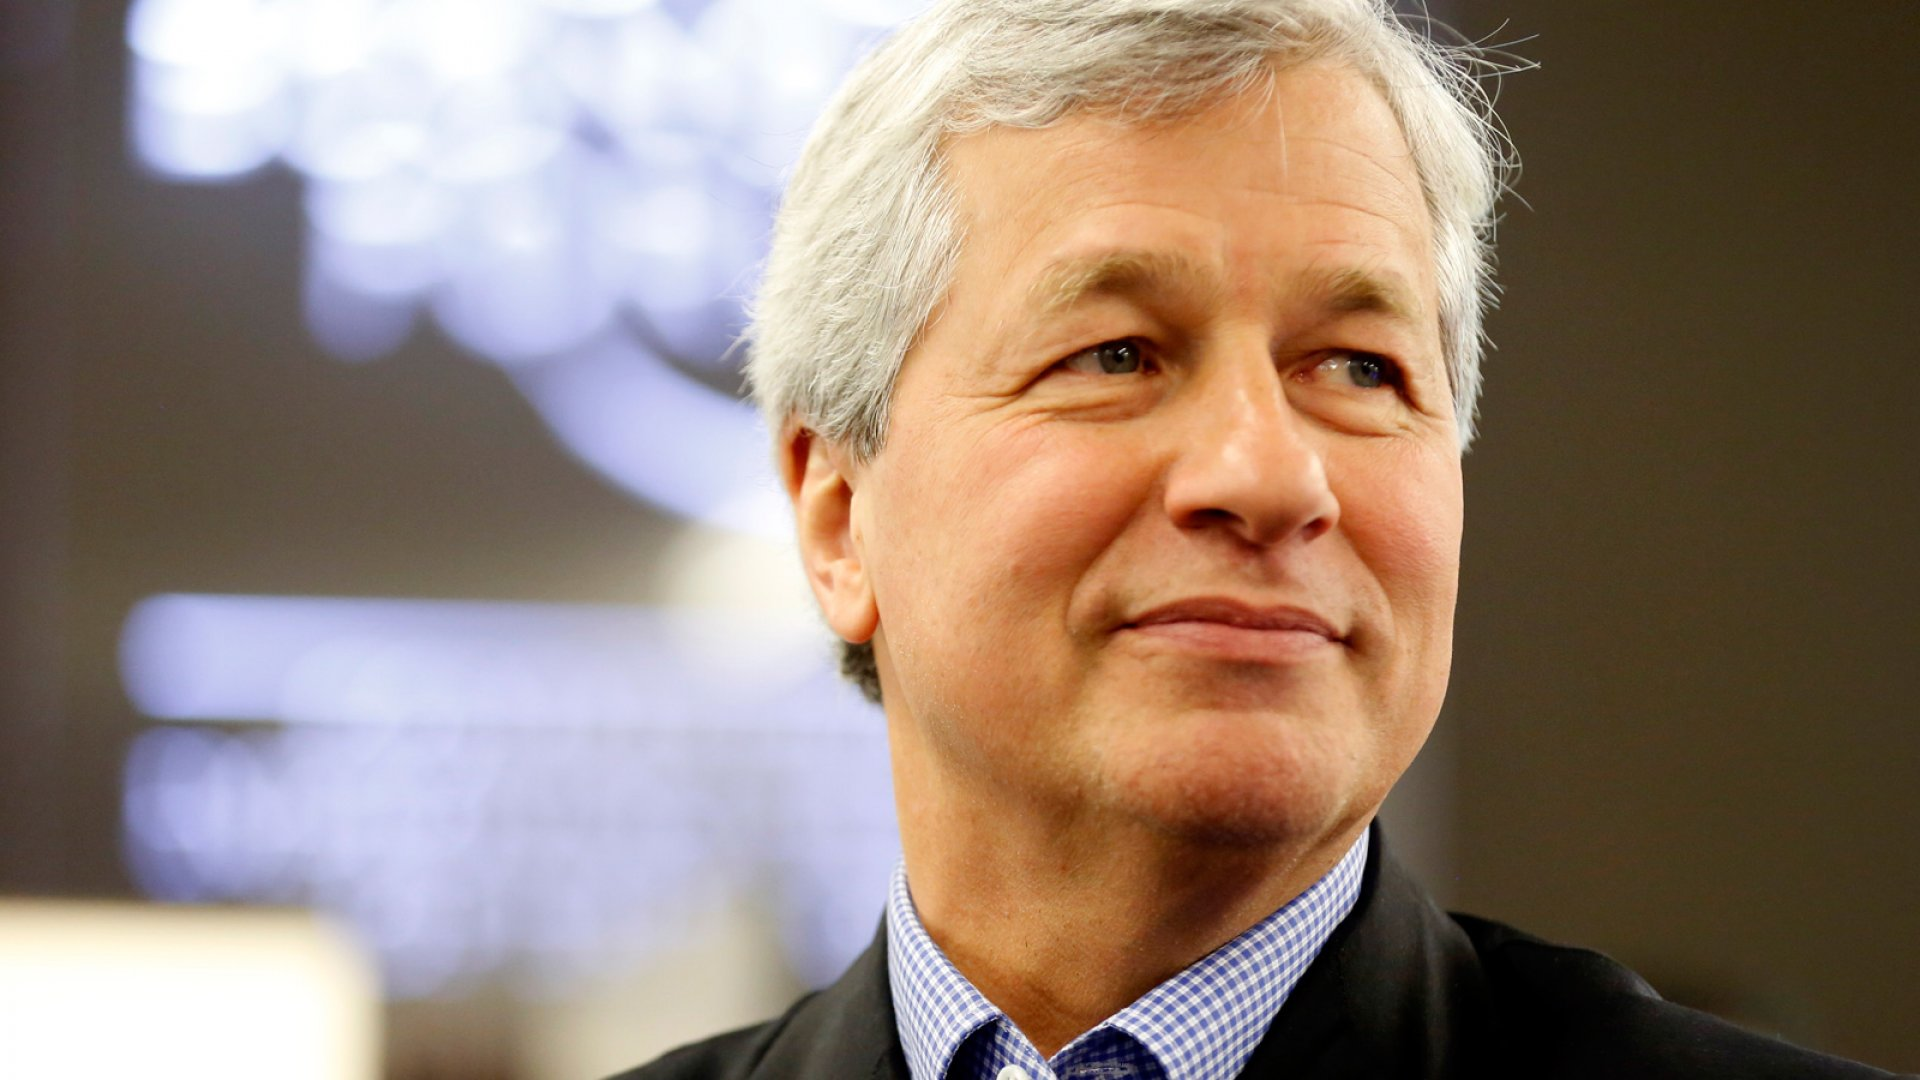 Everyone Gets Sick, Even the High-Powered Jamie Dimon. The Question Is: Are You Ready?